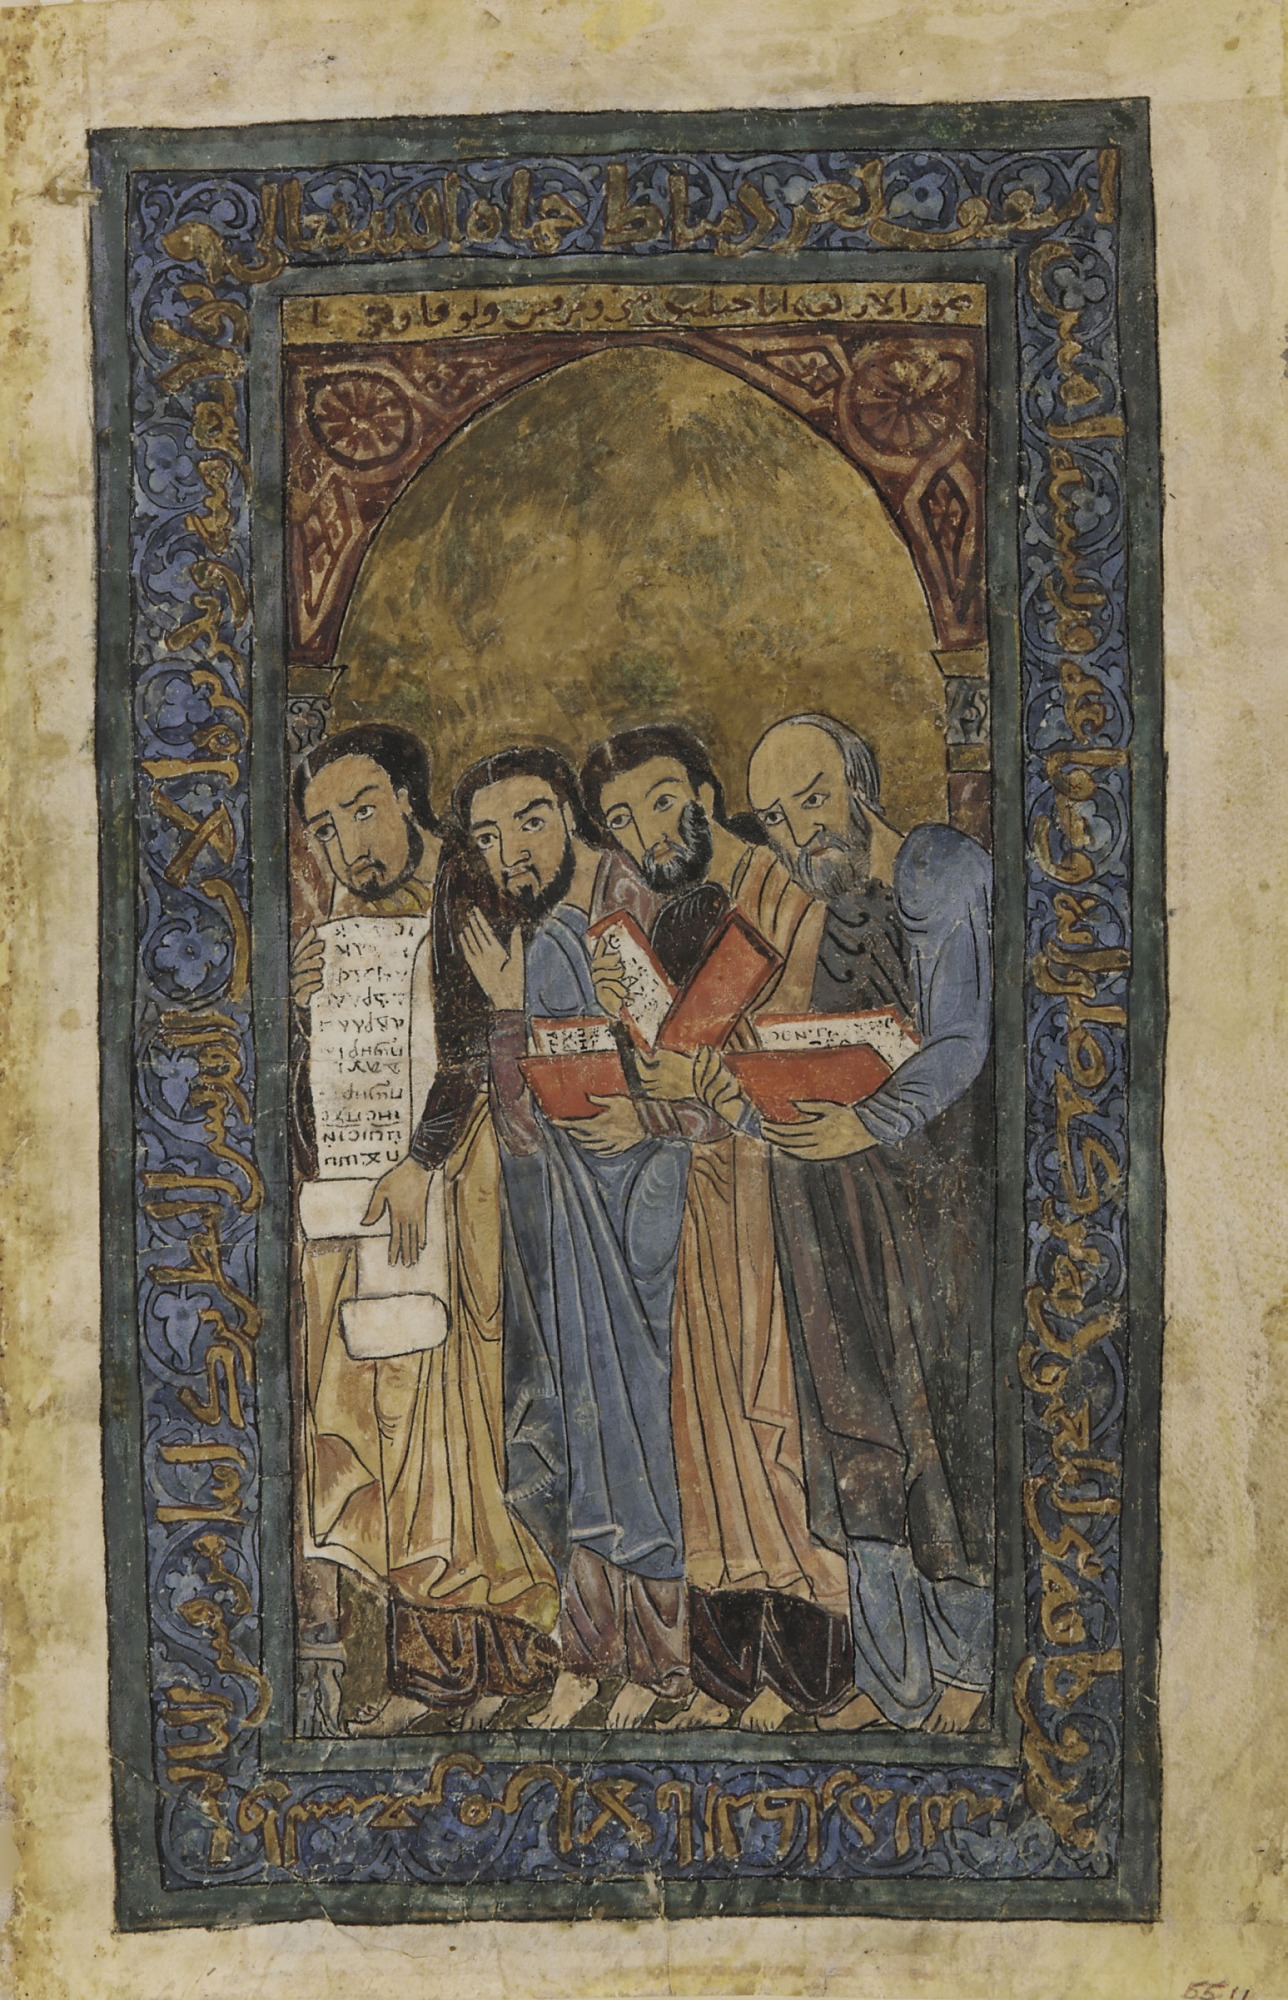 : Four Evangelists